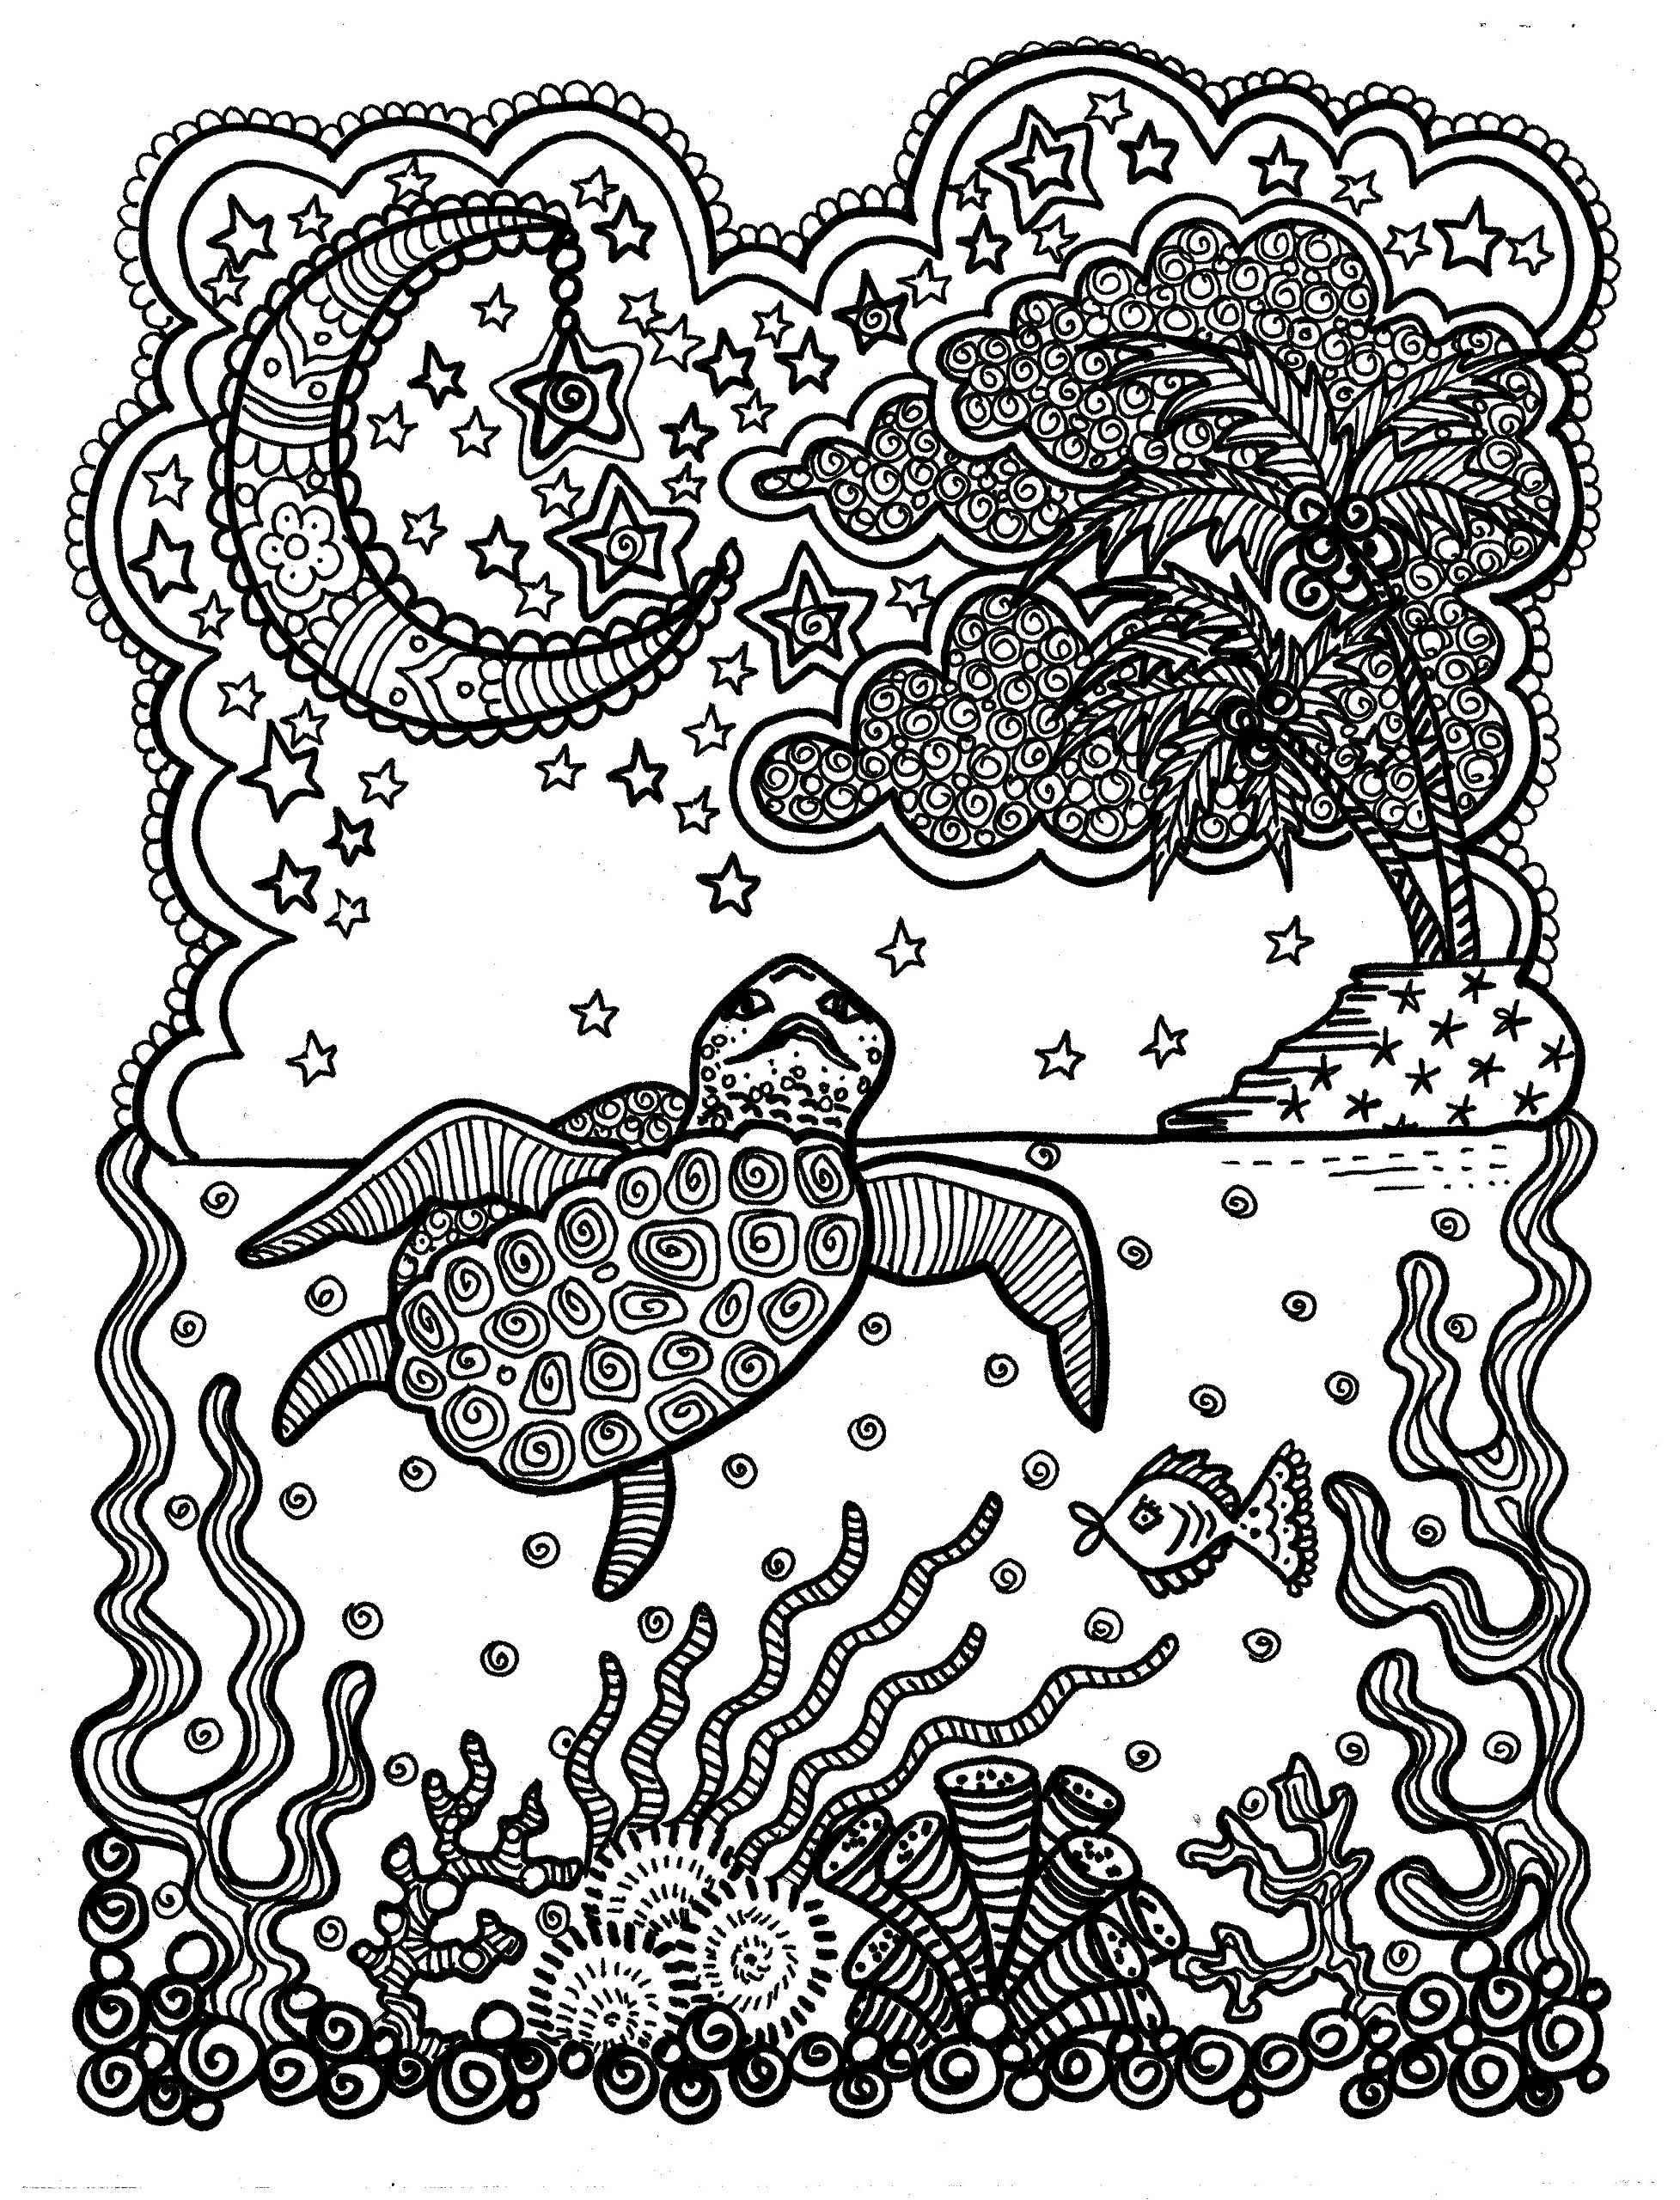 Sea Turtle Coloring Book for All Ages by Artist Deborah Muller ...